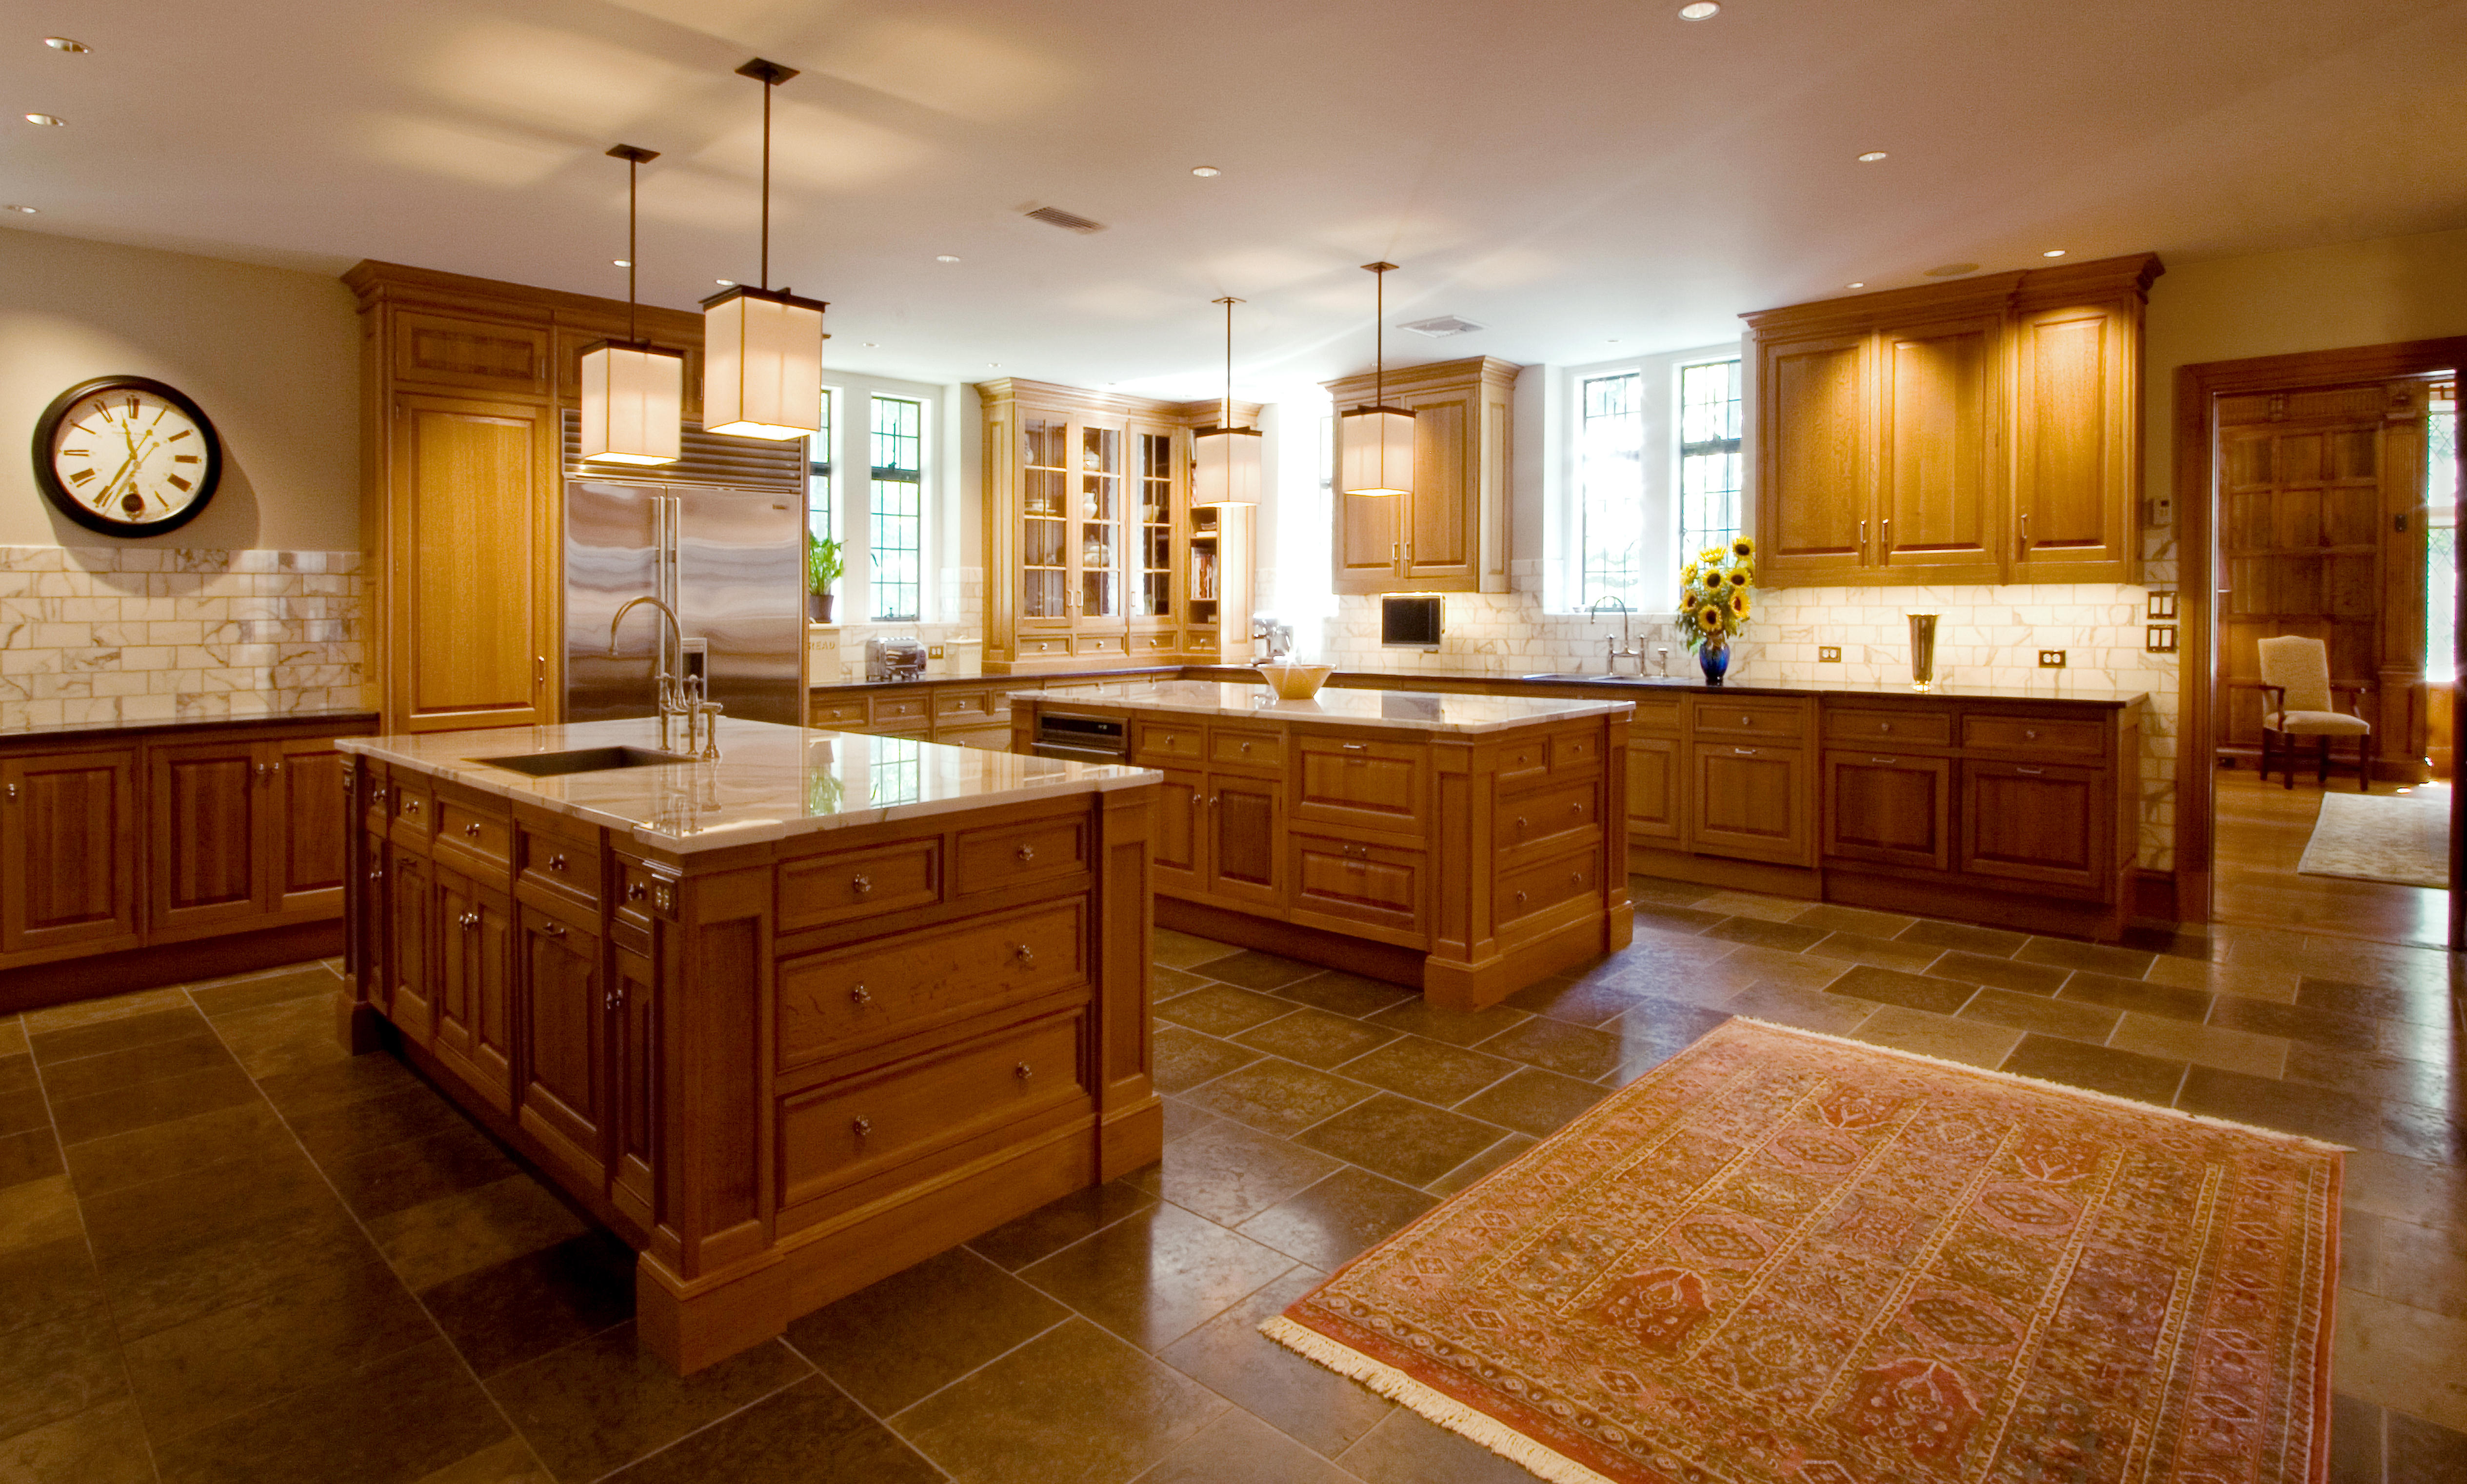 Wonderful Double Island Kitchen 5058 x 3043 · 2134 kB · jpeg